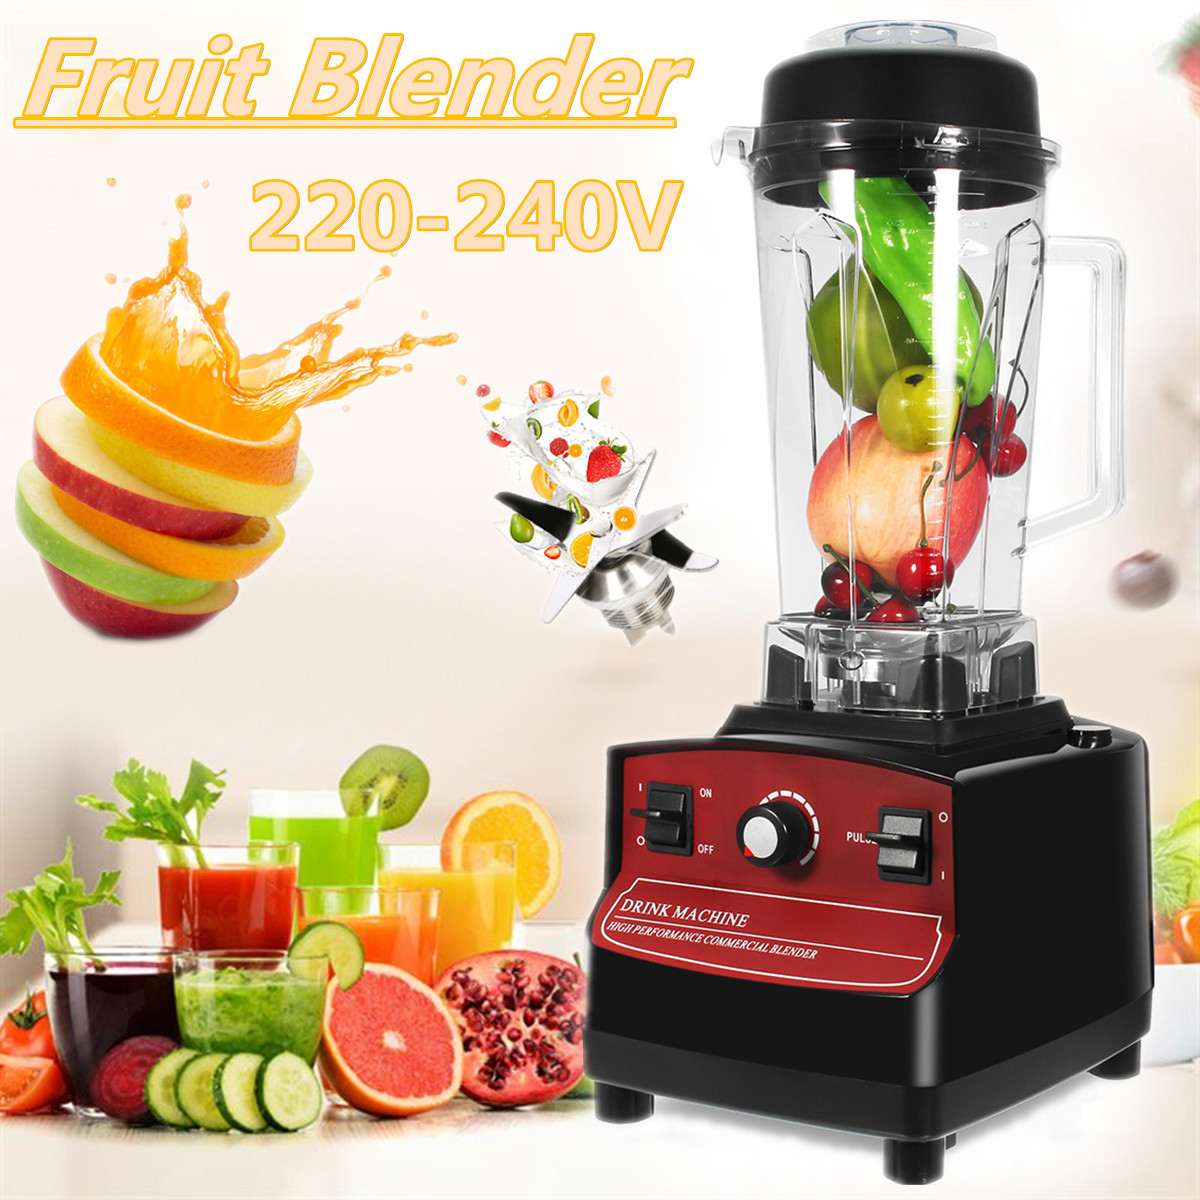 Fruit Smoothie Mixer Juicer Machine 2L 1200W 220-240V AU/EU Plug Commercial-Blender Food Processor Stainless Steel Cutting купить в Москве 2019